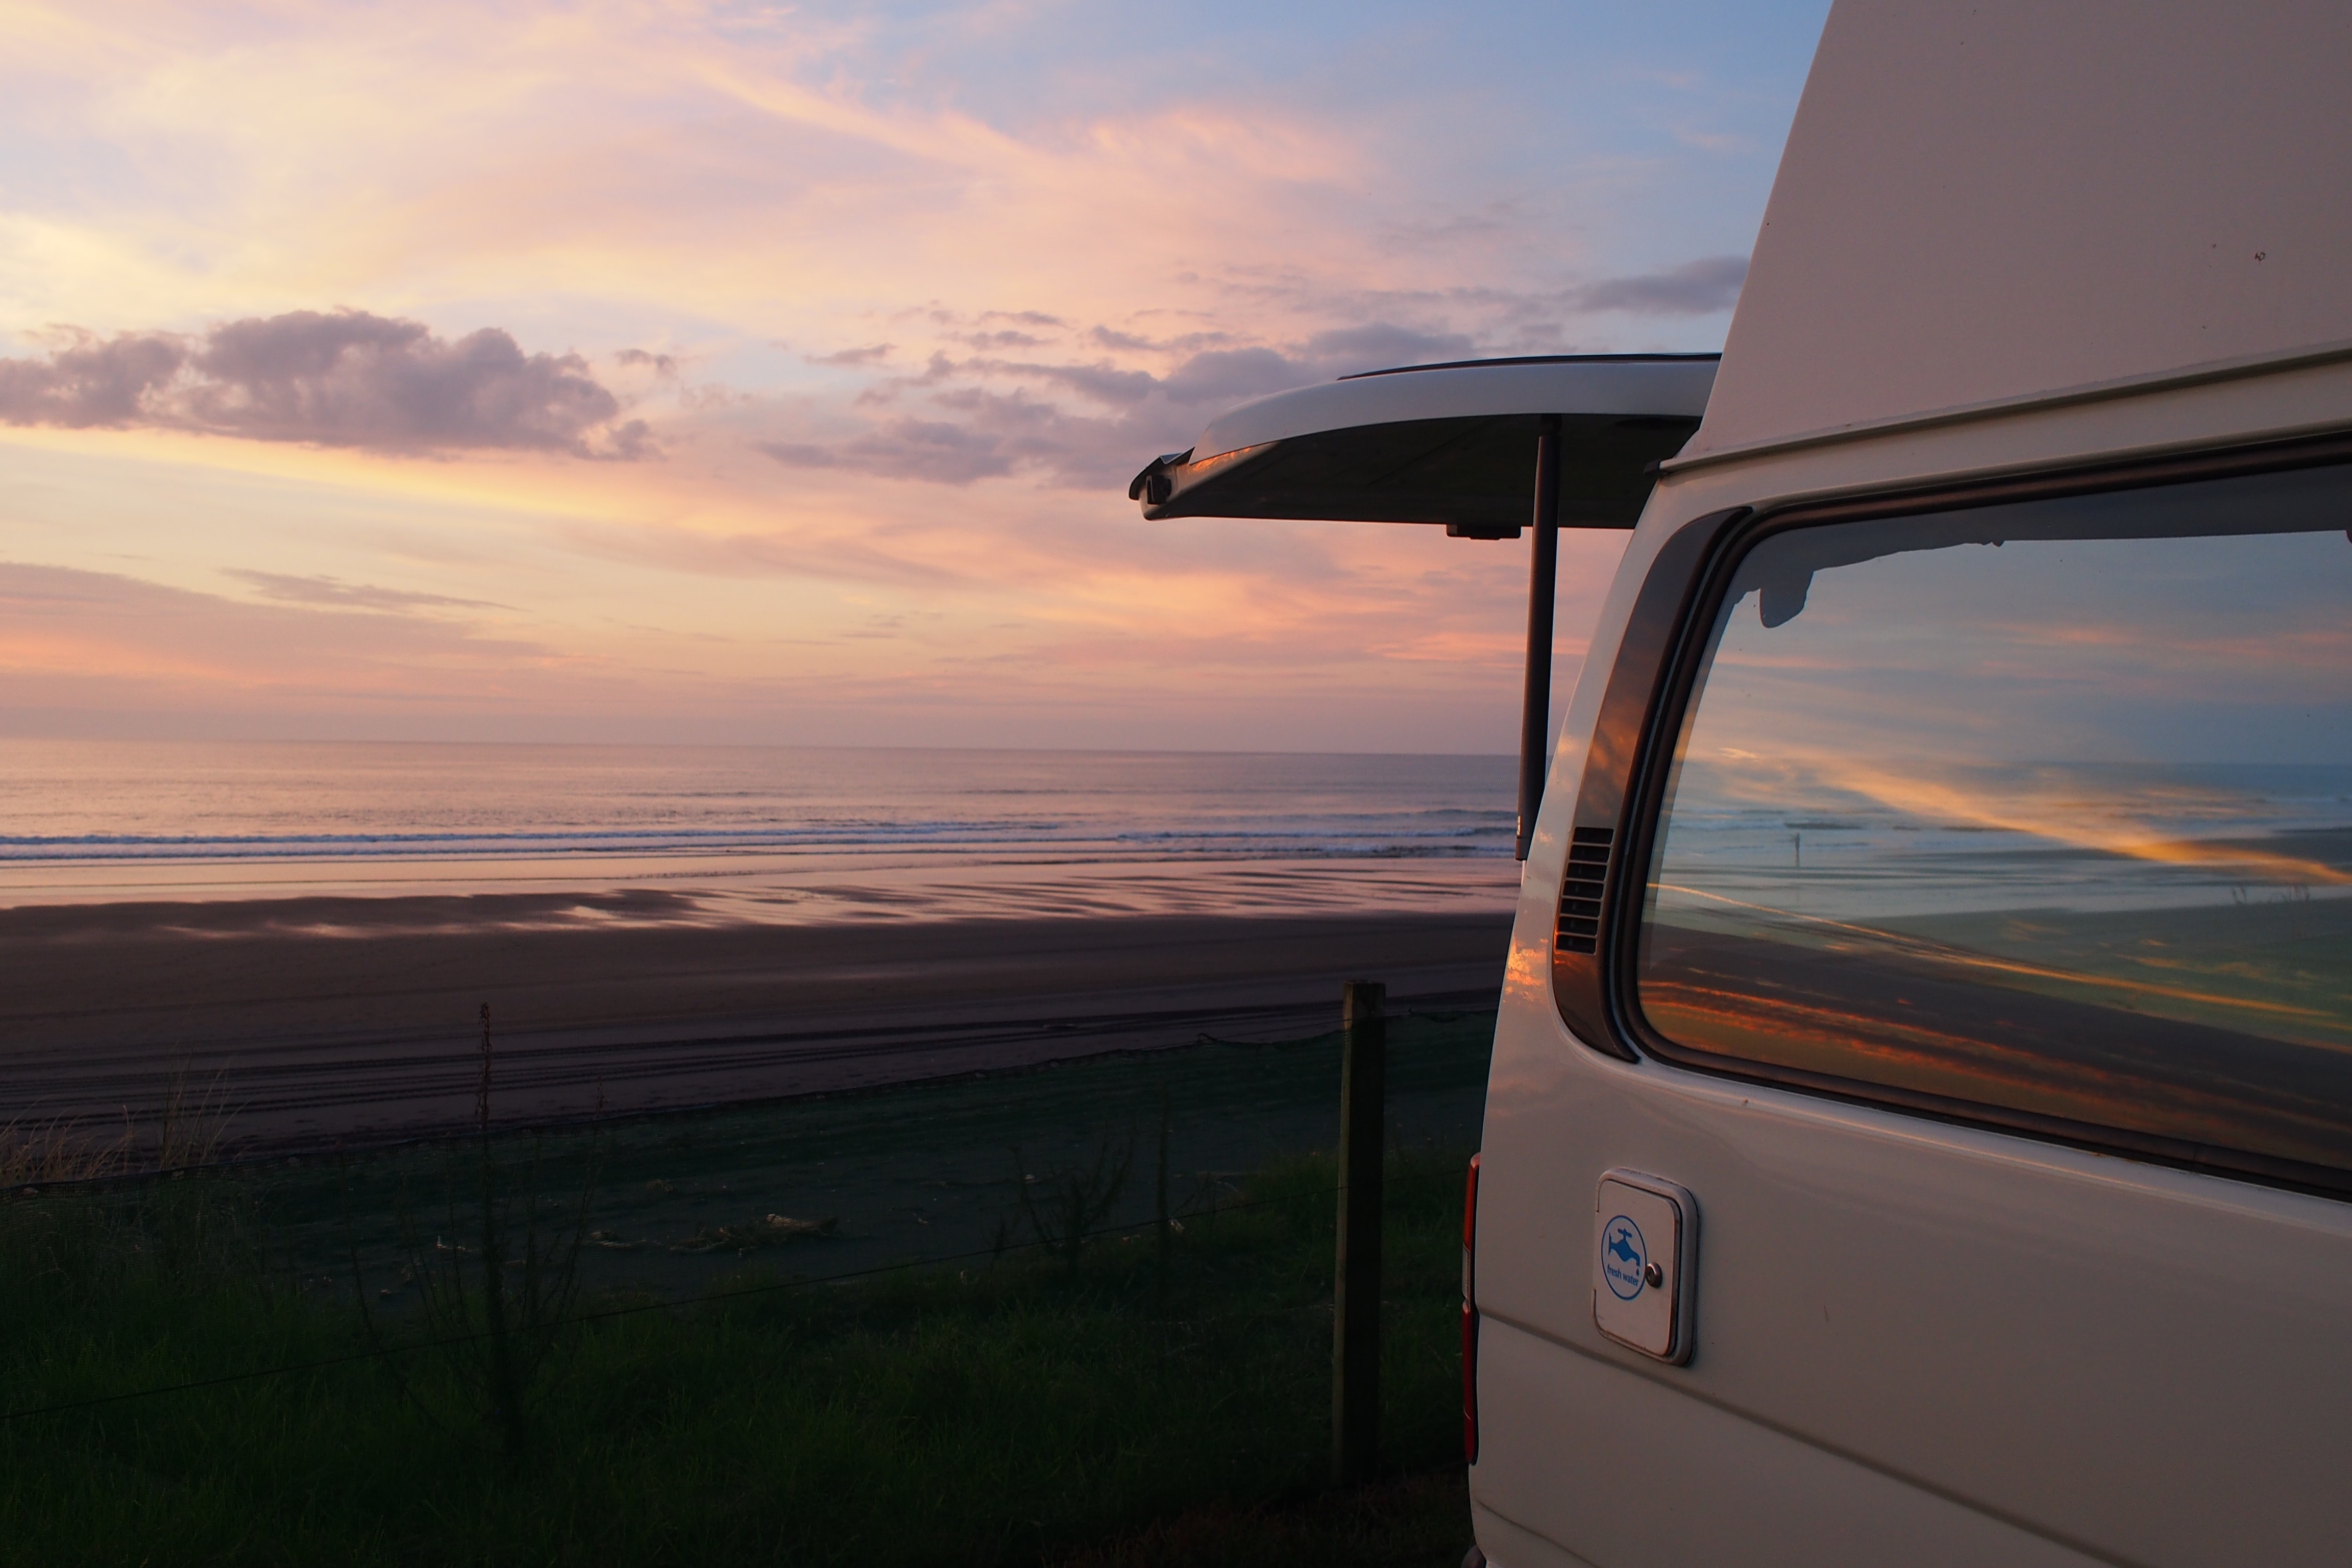 white vehicle parked near ocean during golden hour